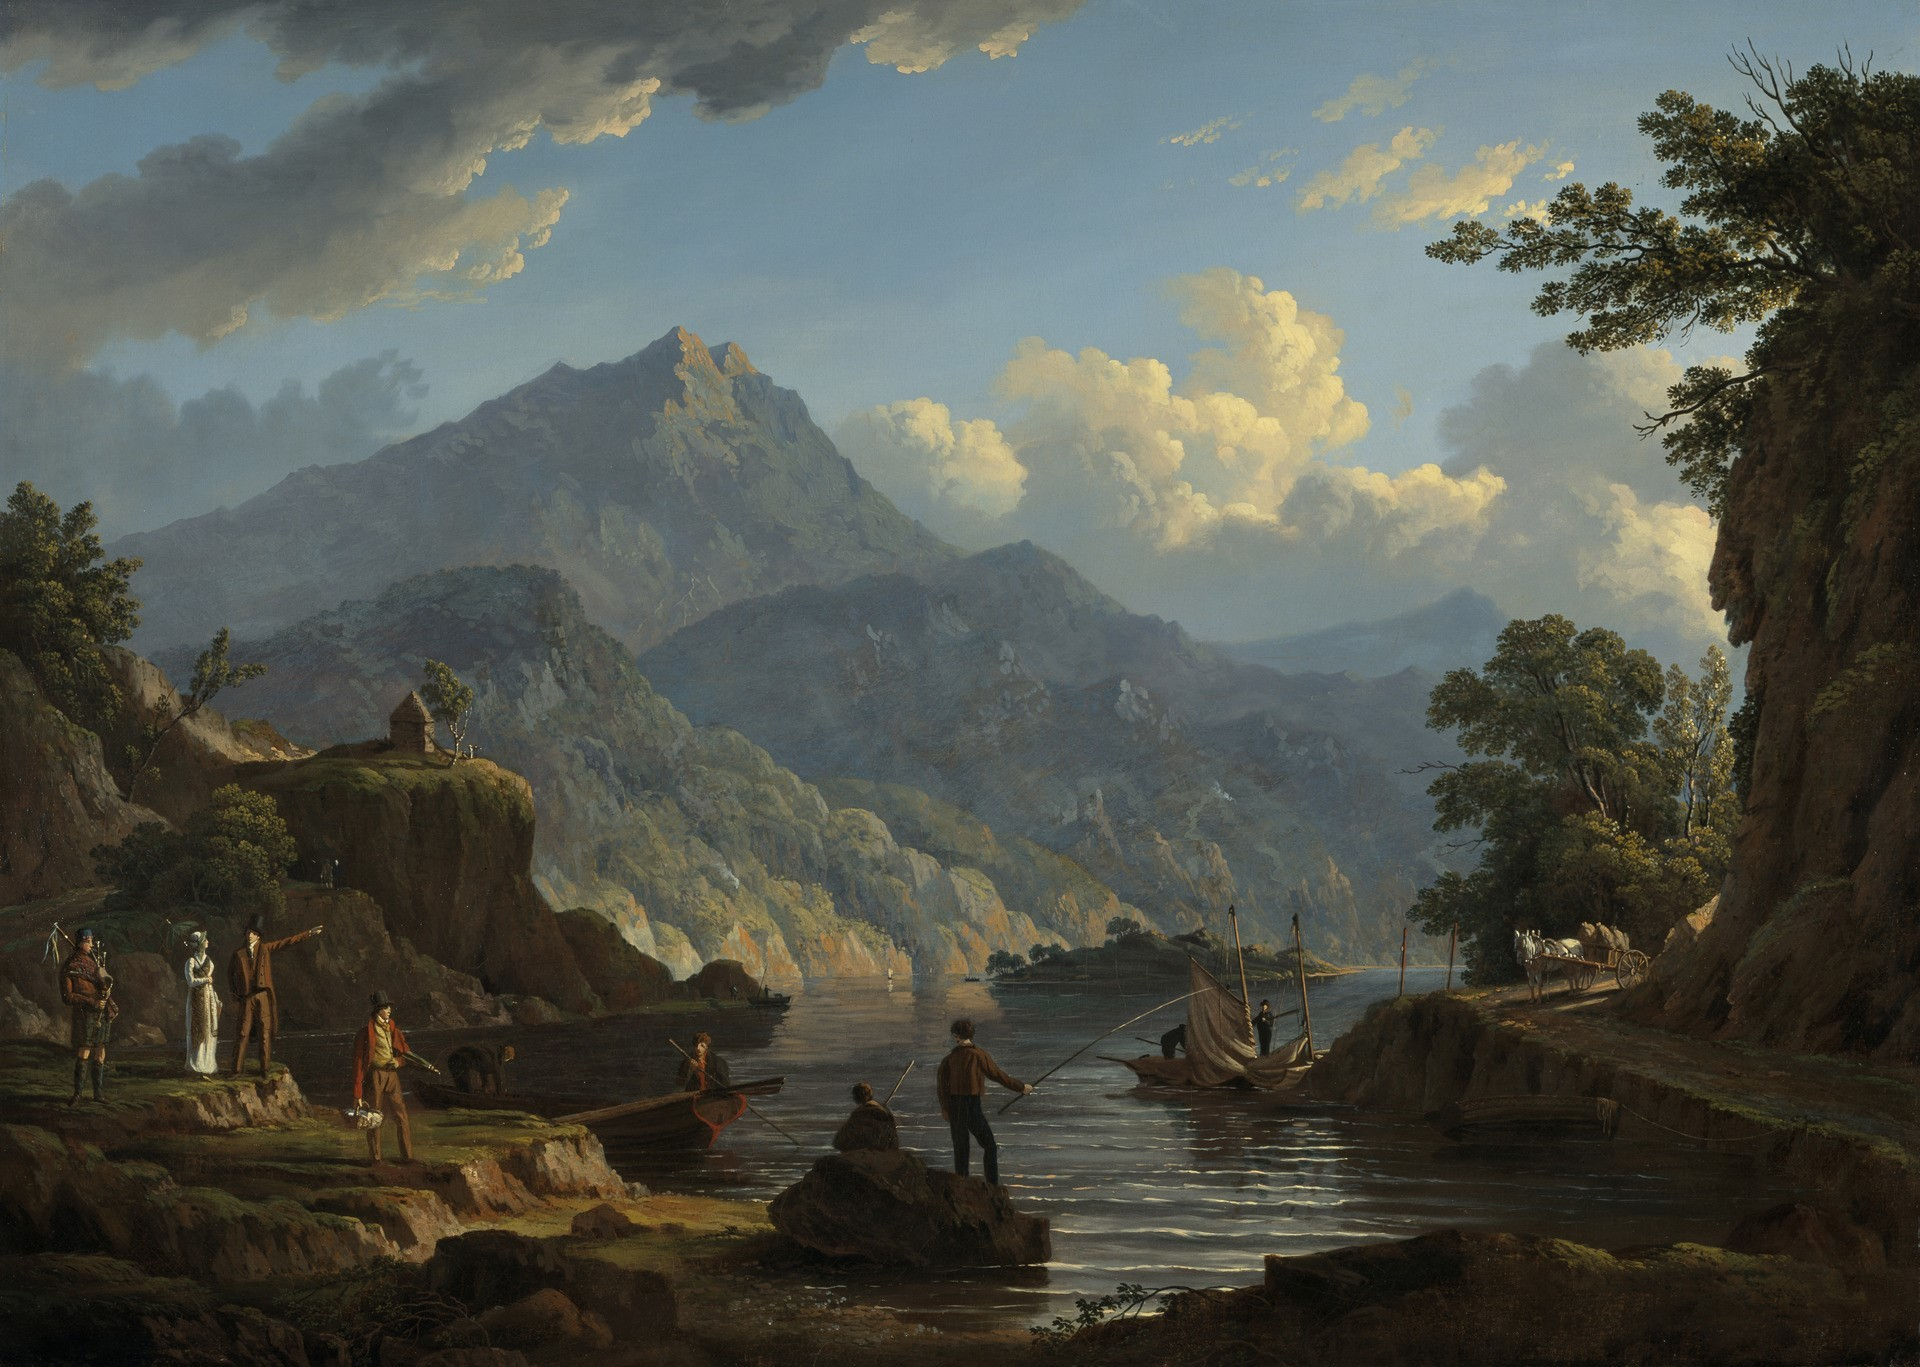 Wild and Majestic to explore how Scotland's romantic image was formed